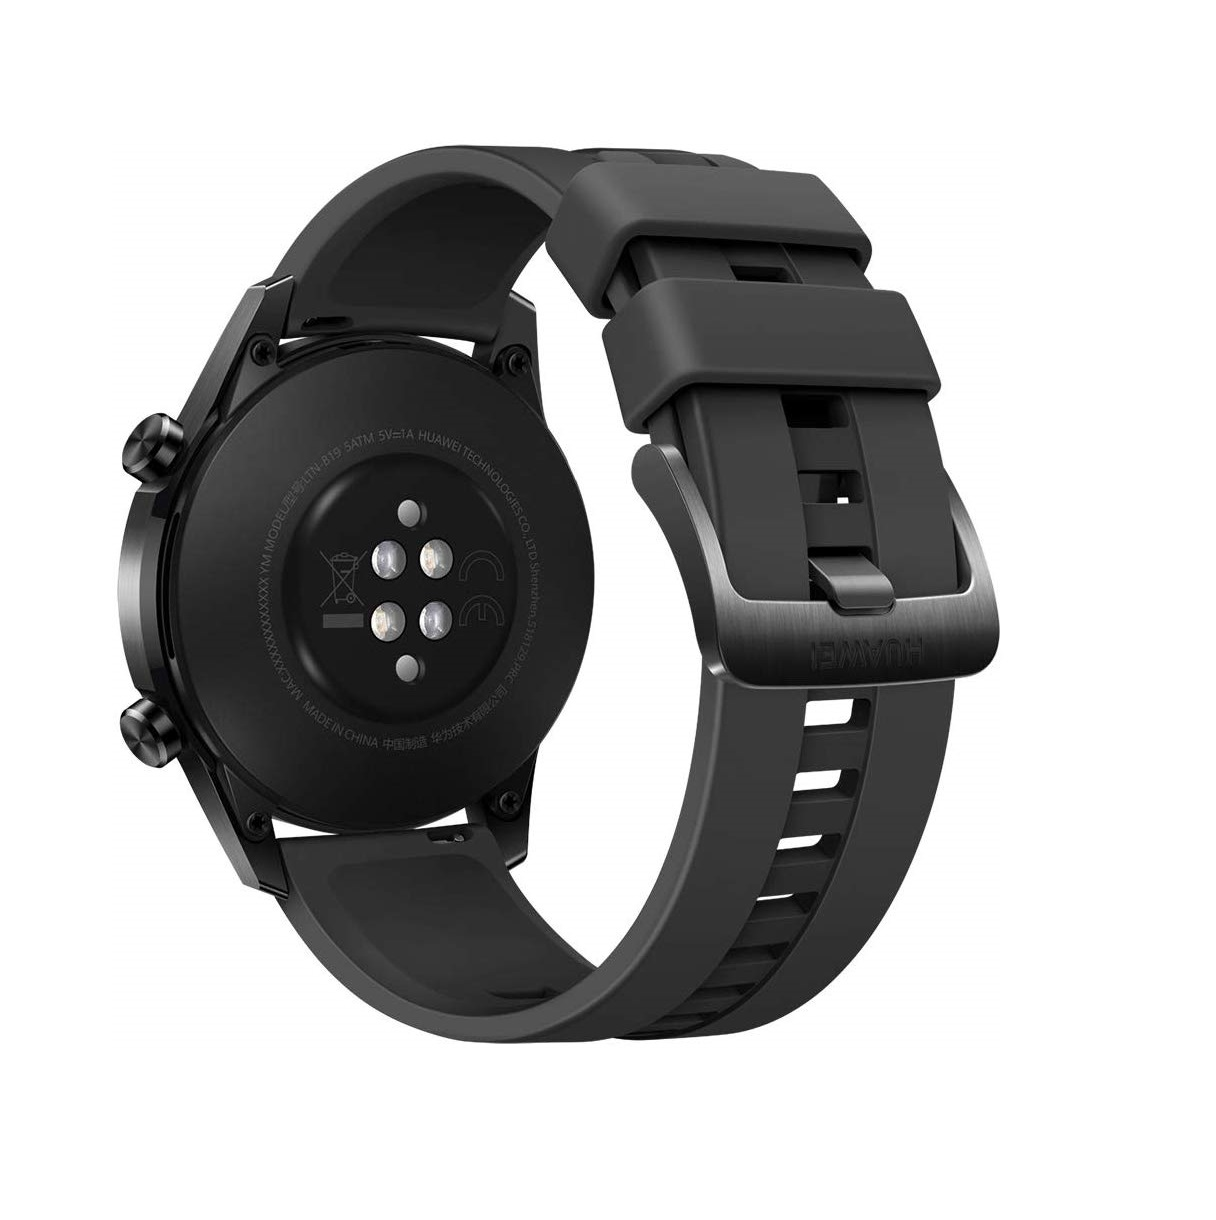 Pametna ura WATCH GT 2 BLACK HUAWEI